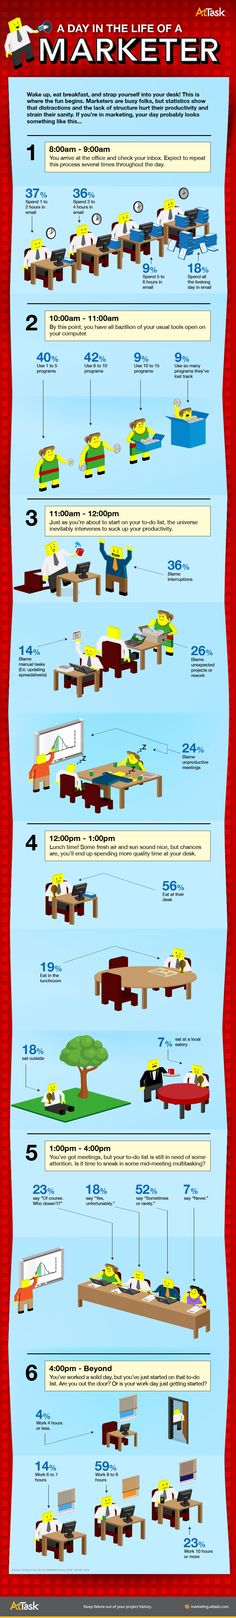 A Day in the Life of a Marketer #Infographic #marketing